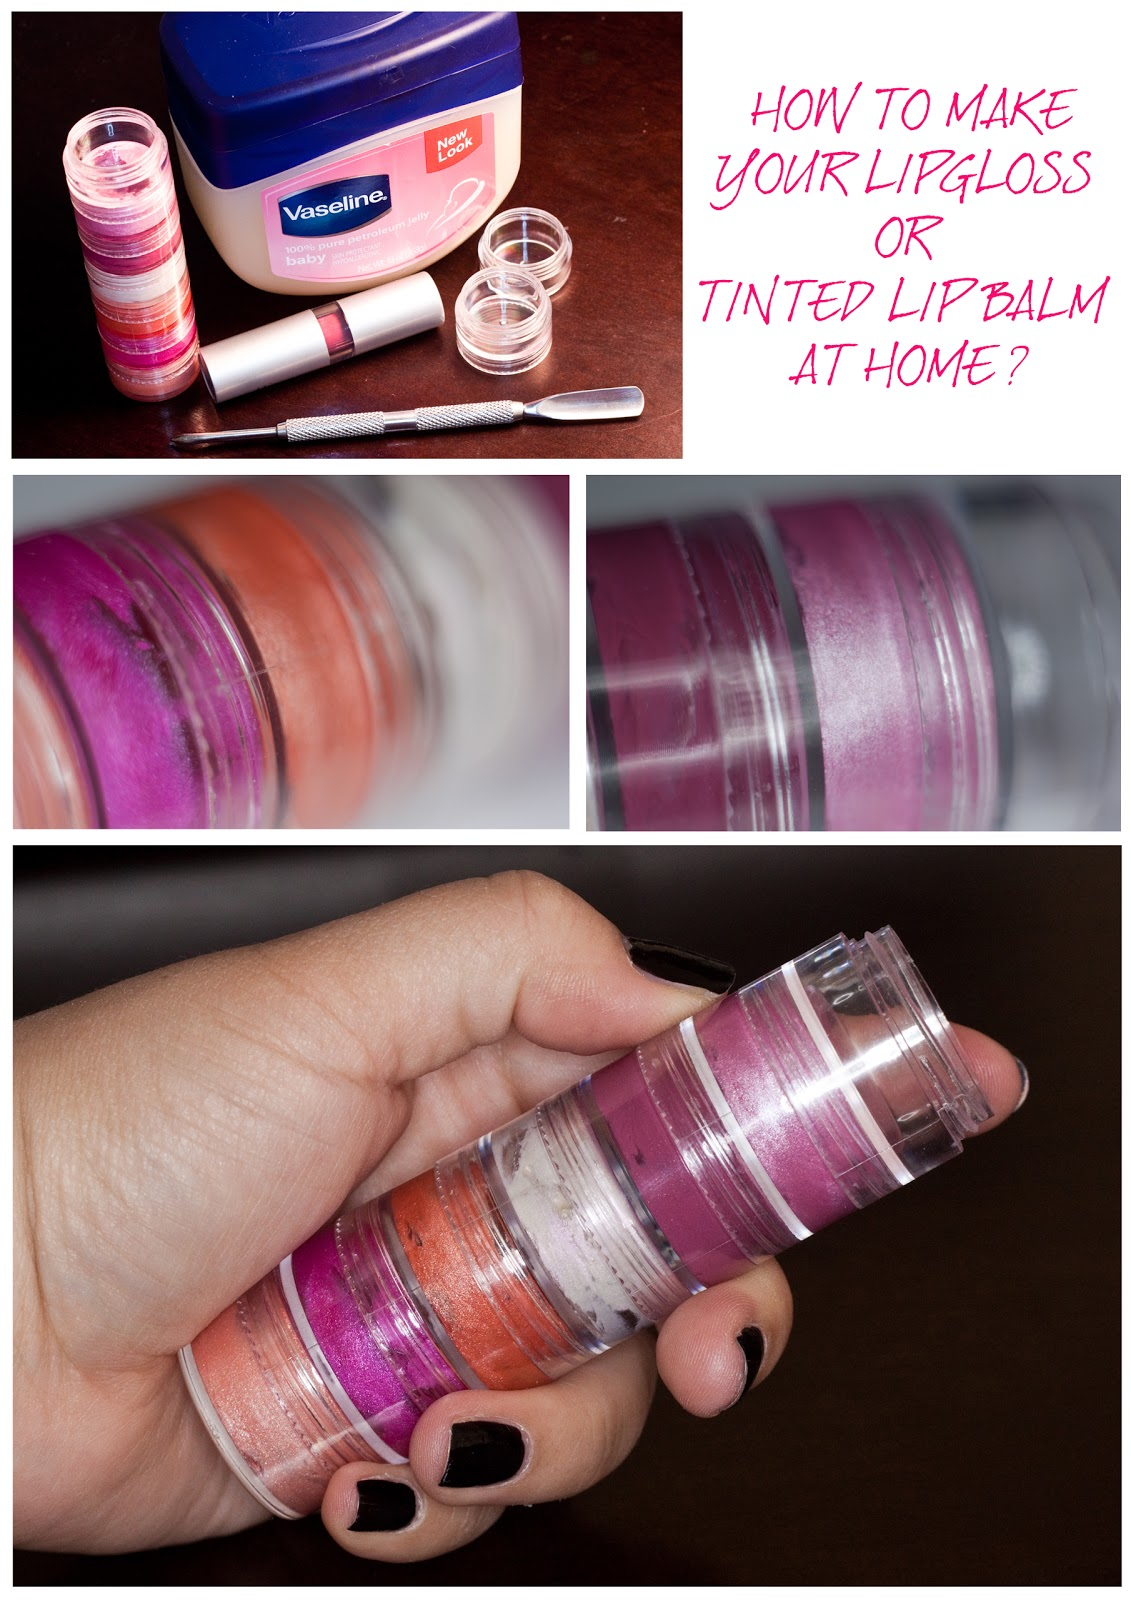 How to Make Your Lipgloss or Tinted Lip balm at Home, lipgloss, lip balm, tutorial, makeup tutorial, asian beauty, korean, makeup asian blog, makeup blog, monolid, single lid, asian hair, black hair, light brown, futilitiesandmore.blogspot.com, futilities and more, futilitiesandmore, monolid, asian beauty, asian, makeup review, make up, makeup, cosmetics, maquillage, fond de teint, korean cosmetic